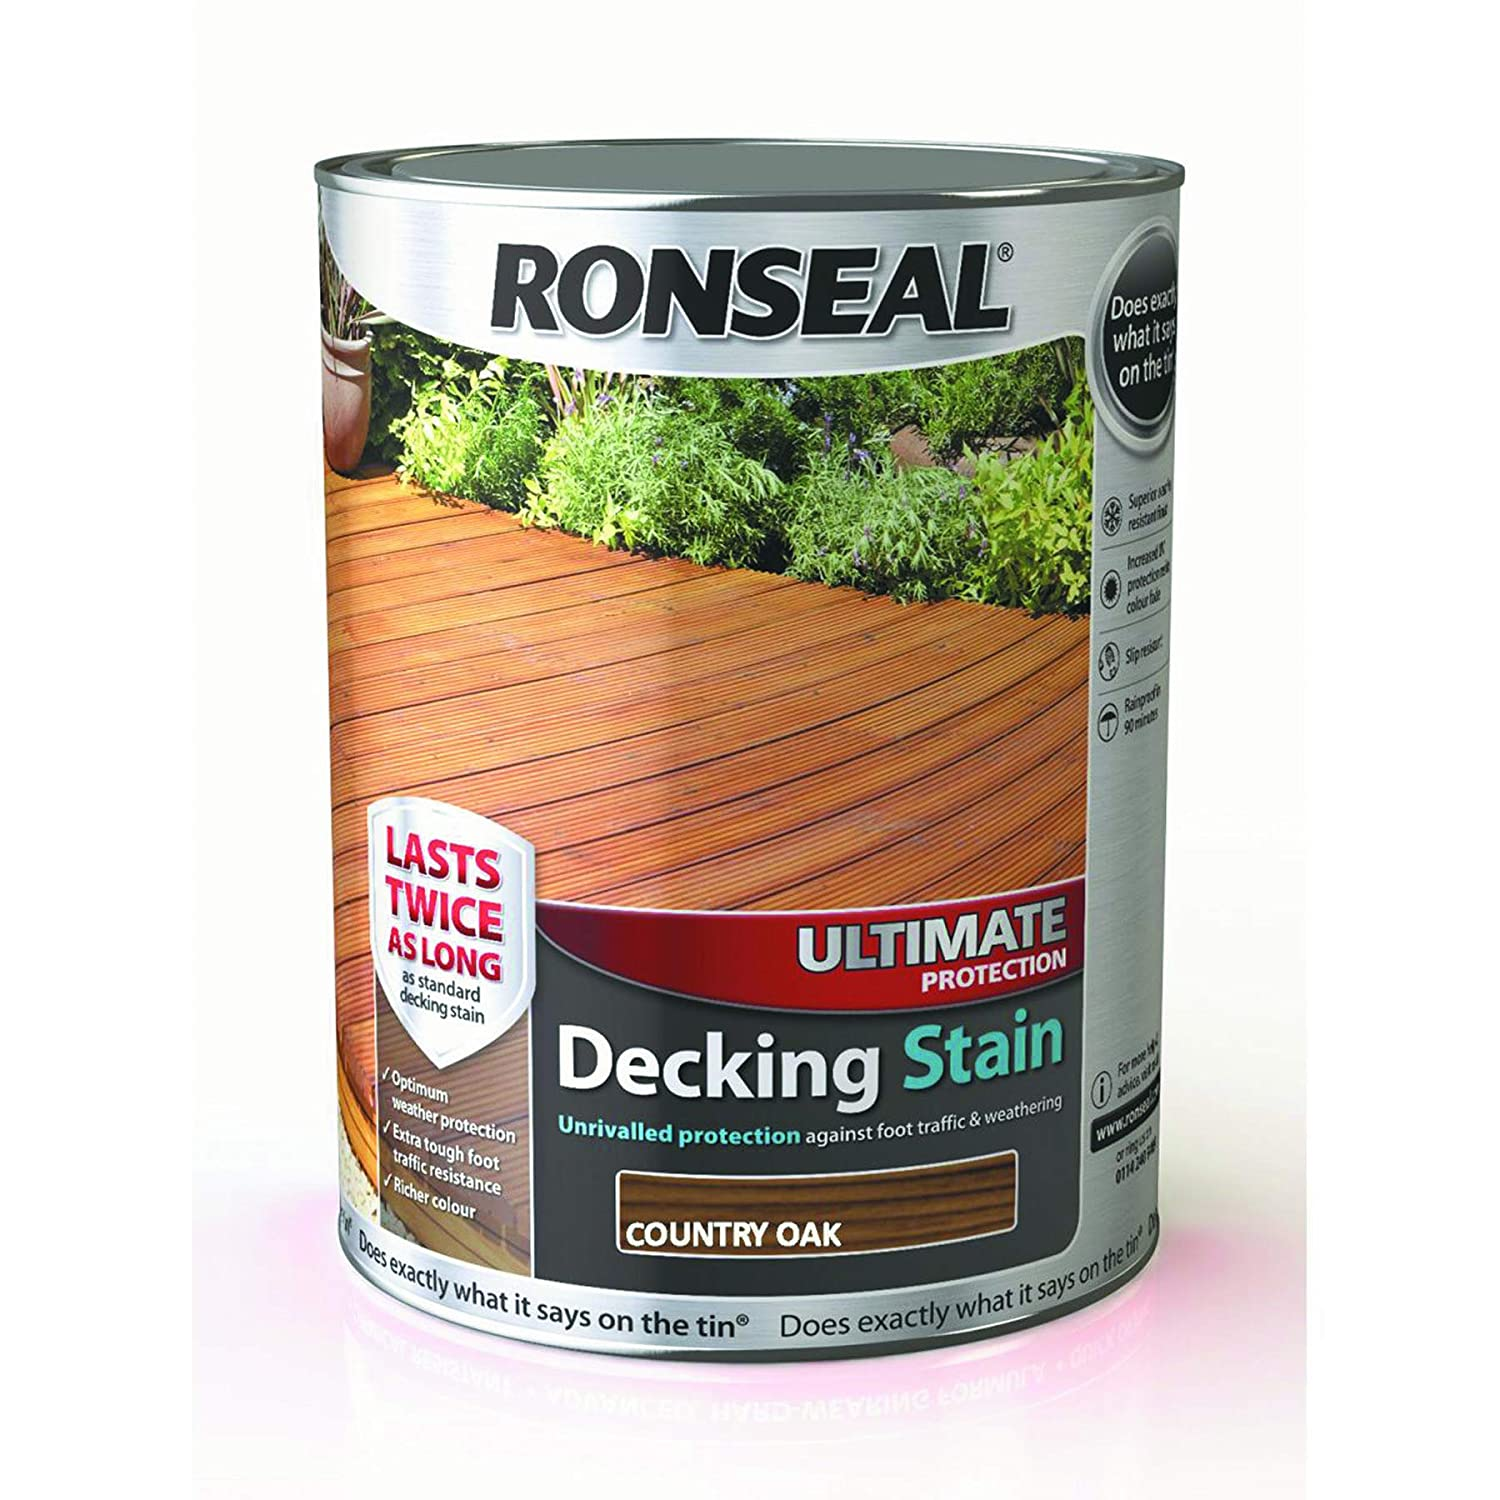 Ronseal Ultimate Protection Decking Stain Walnut 5L Sherwin-Williams 37457